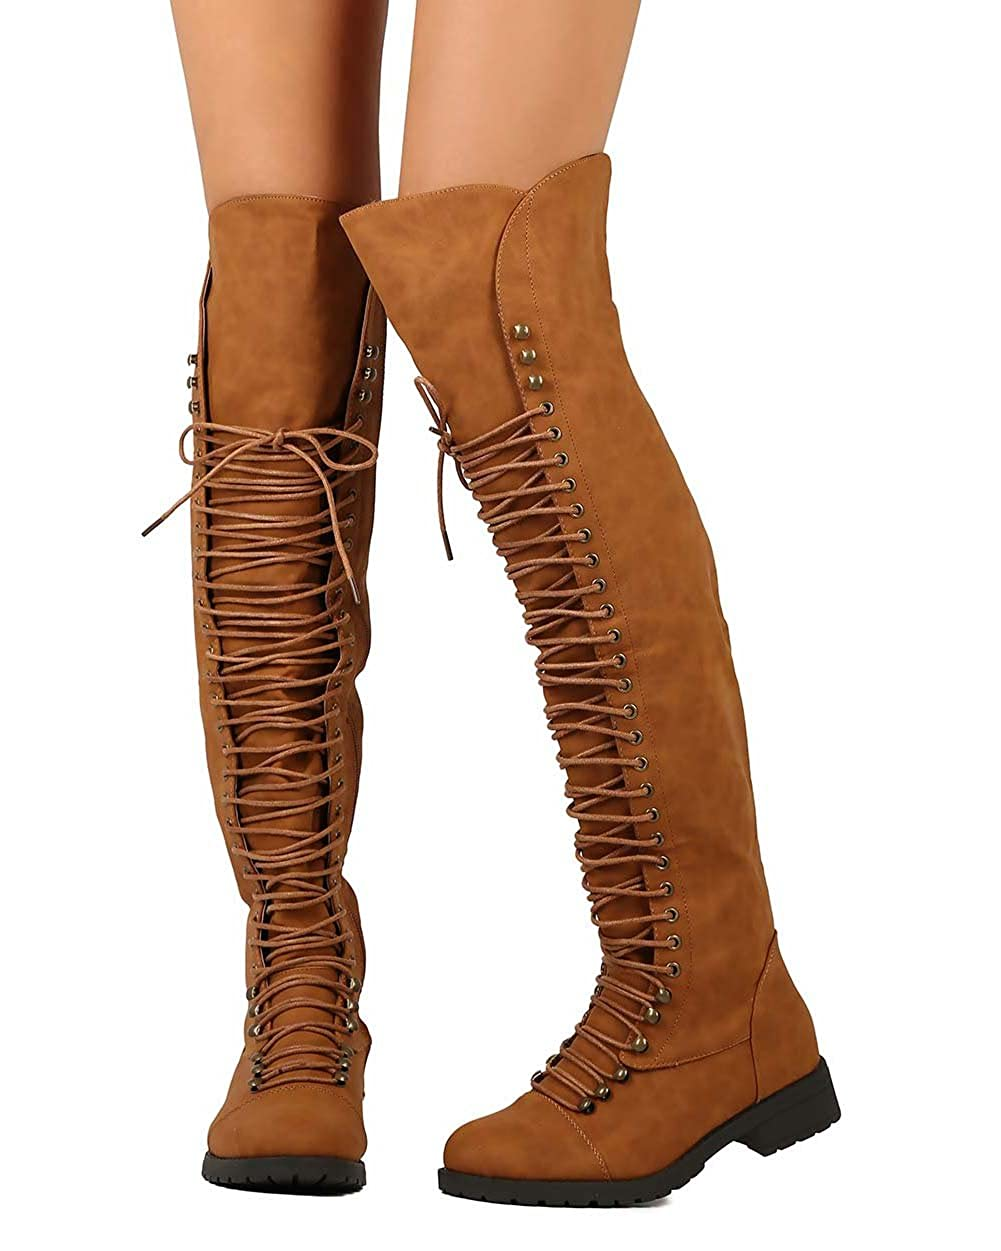 High Thigh lace up combat boots photo